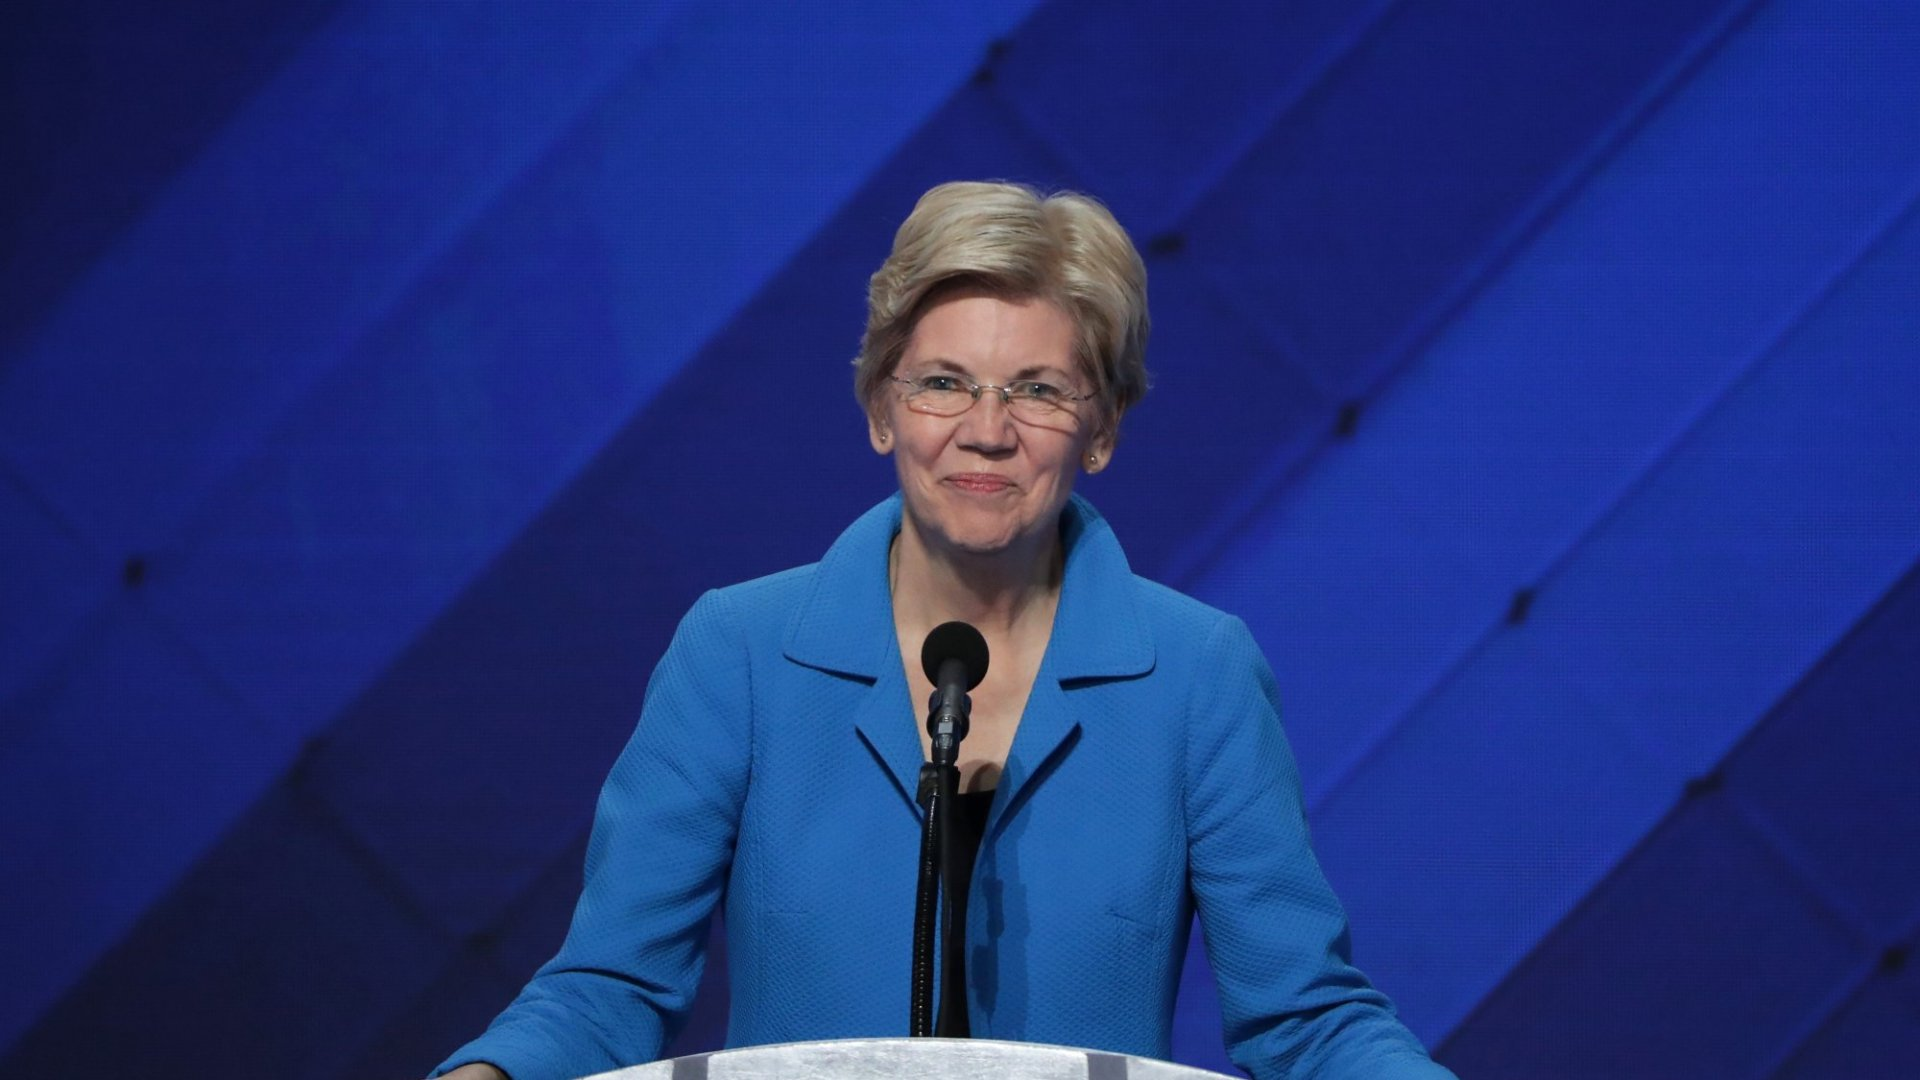 I'm an Entrepreneurship Professor, and I Think Elizabeth Warren Is the Most Pro-Business Presidential Democratic Candidate